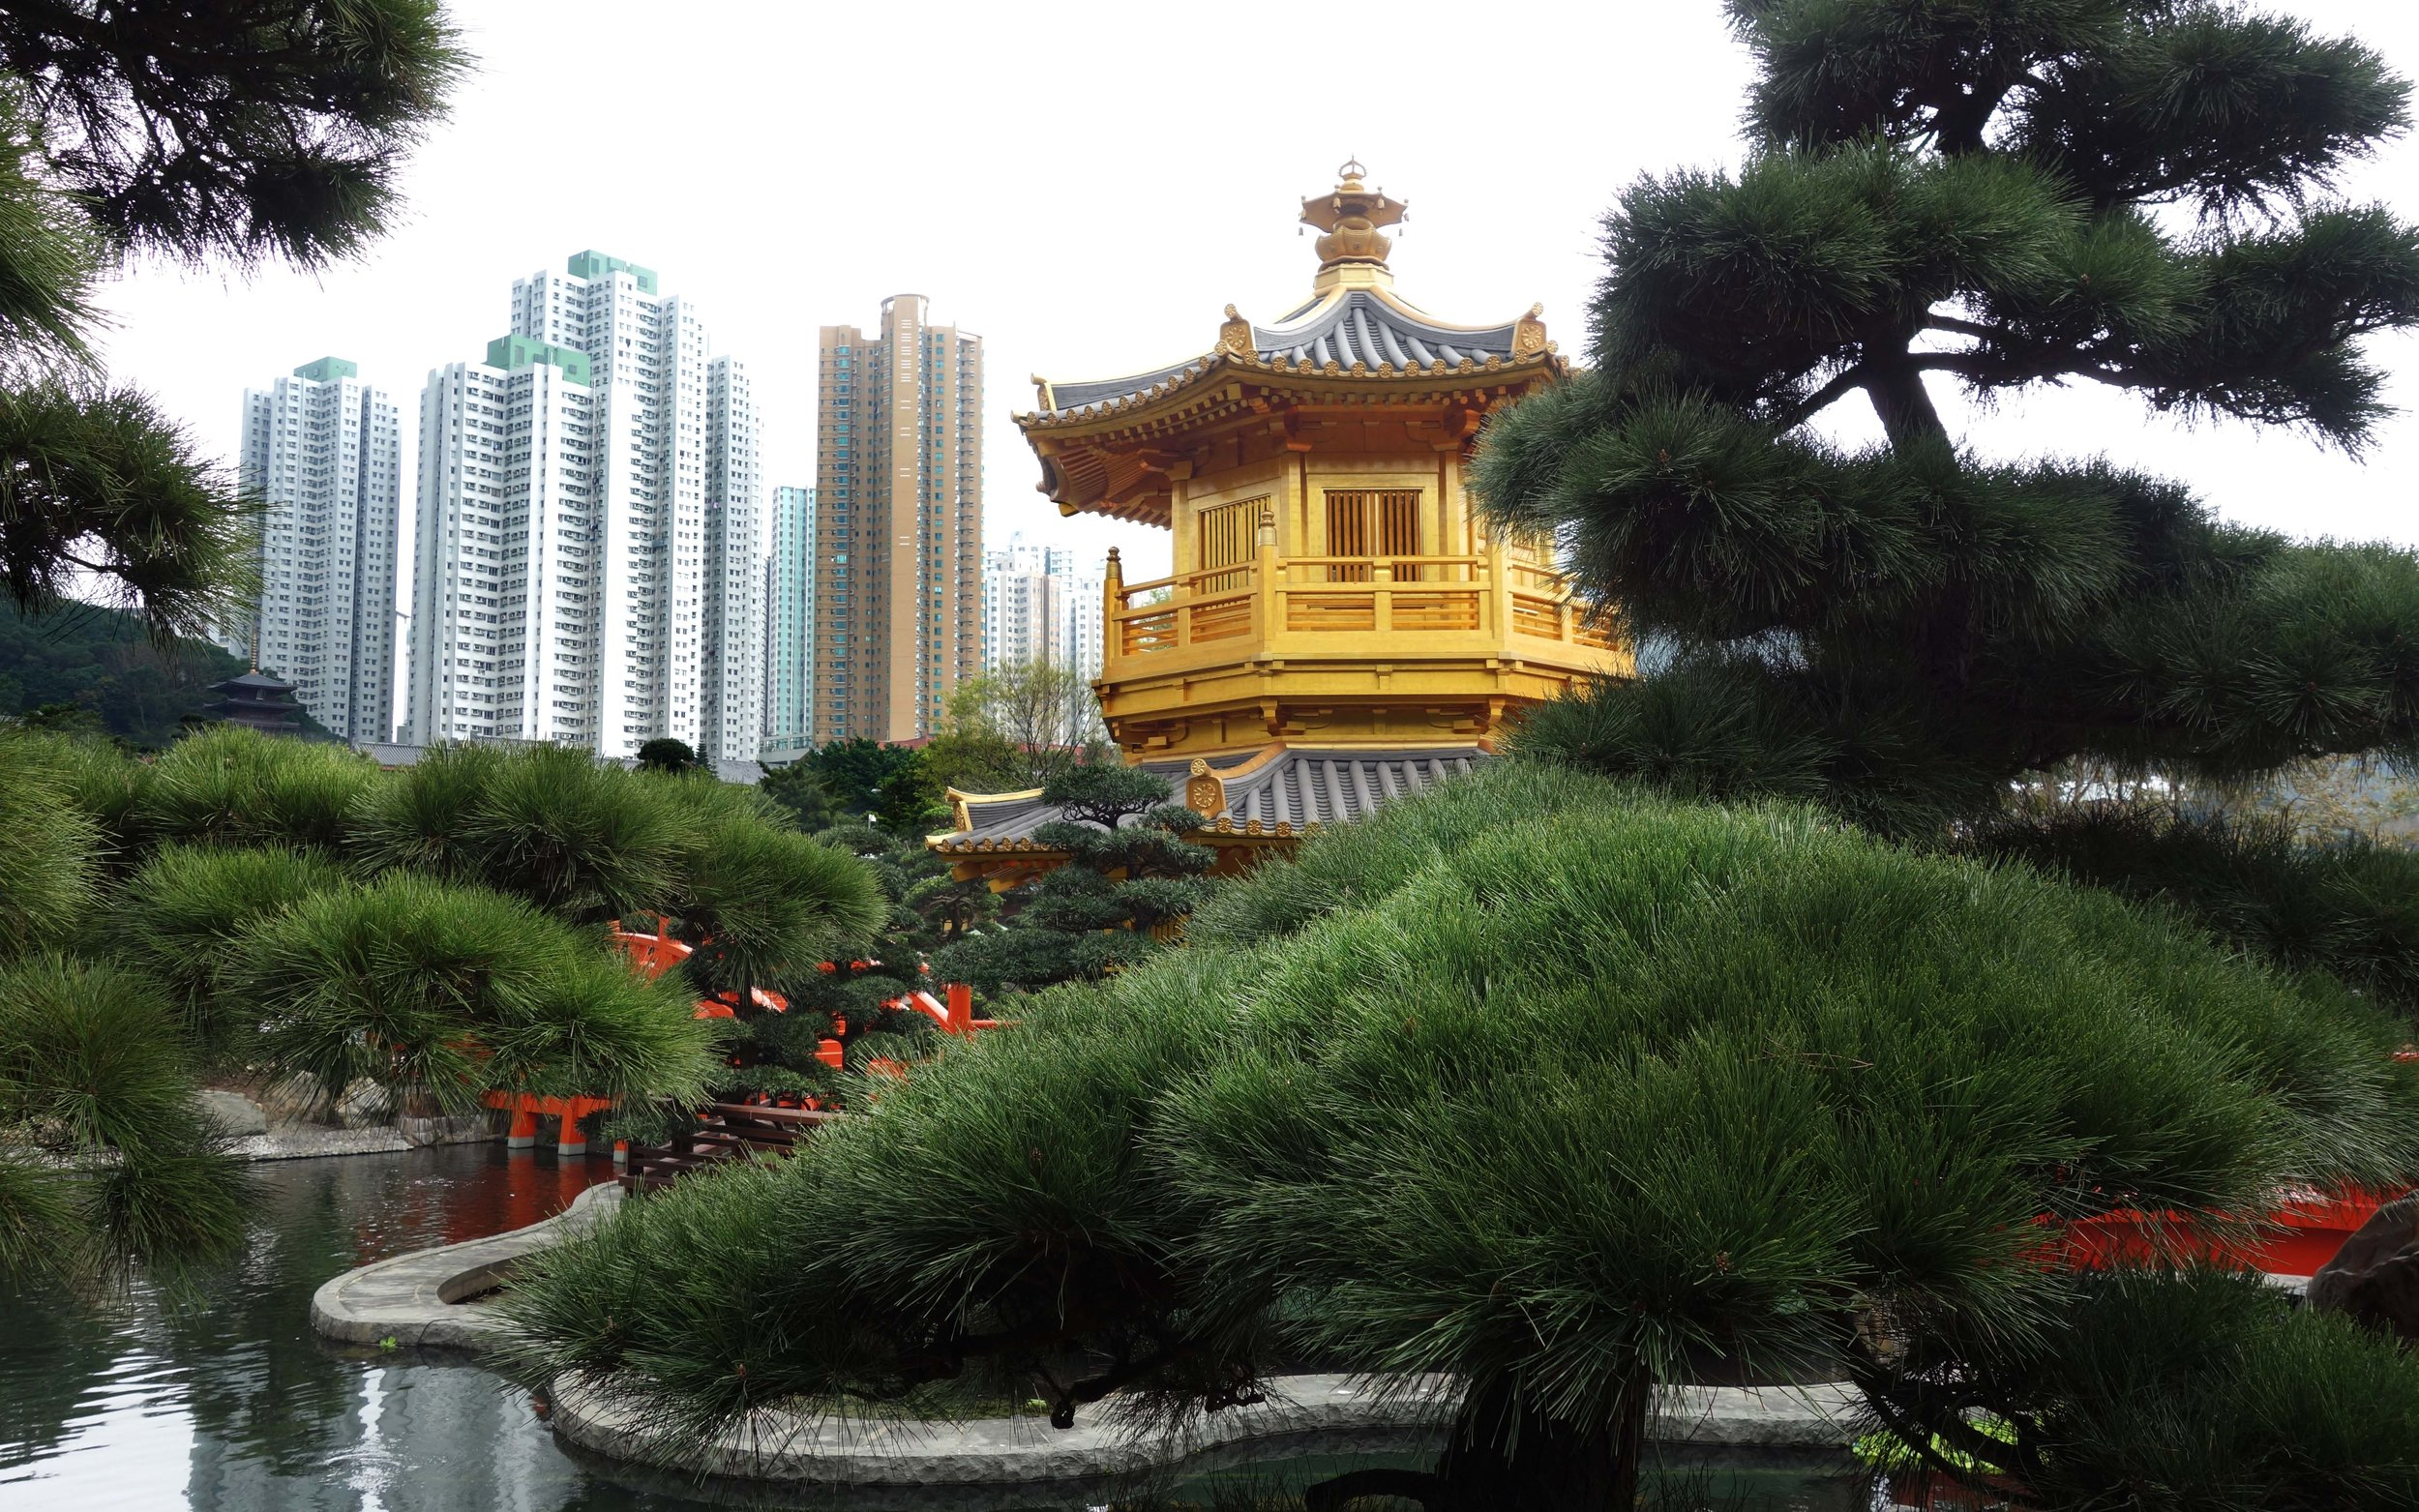 Gardens across from Chin Lin Nunnery